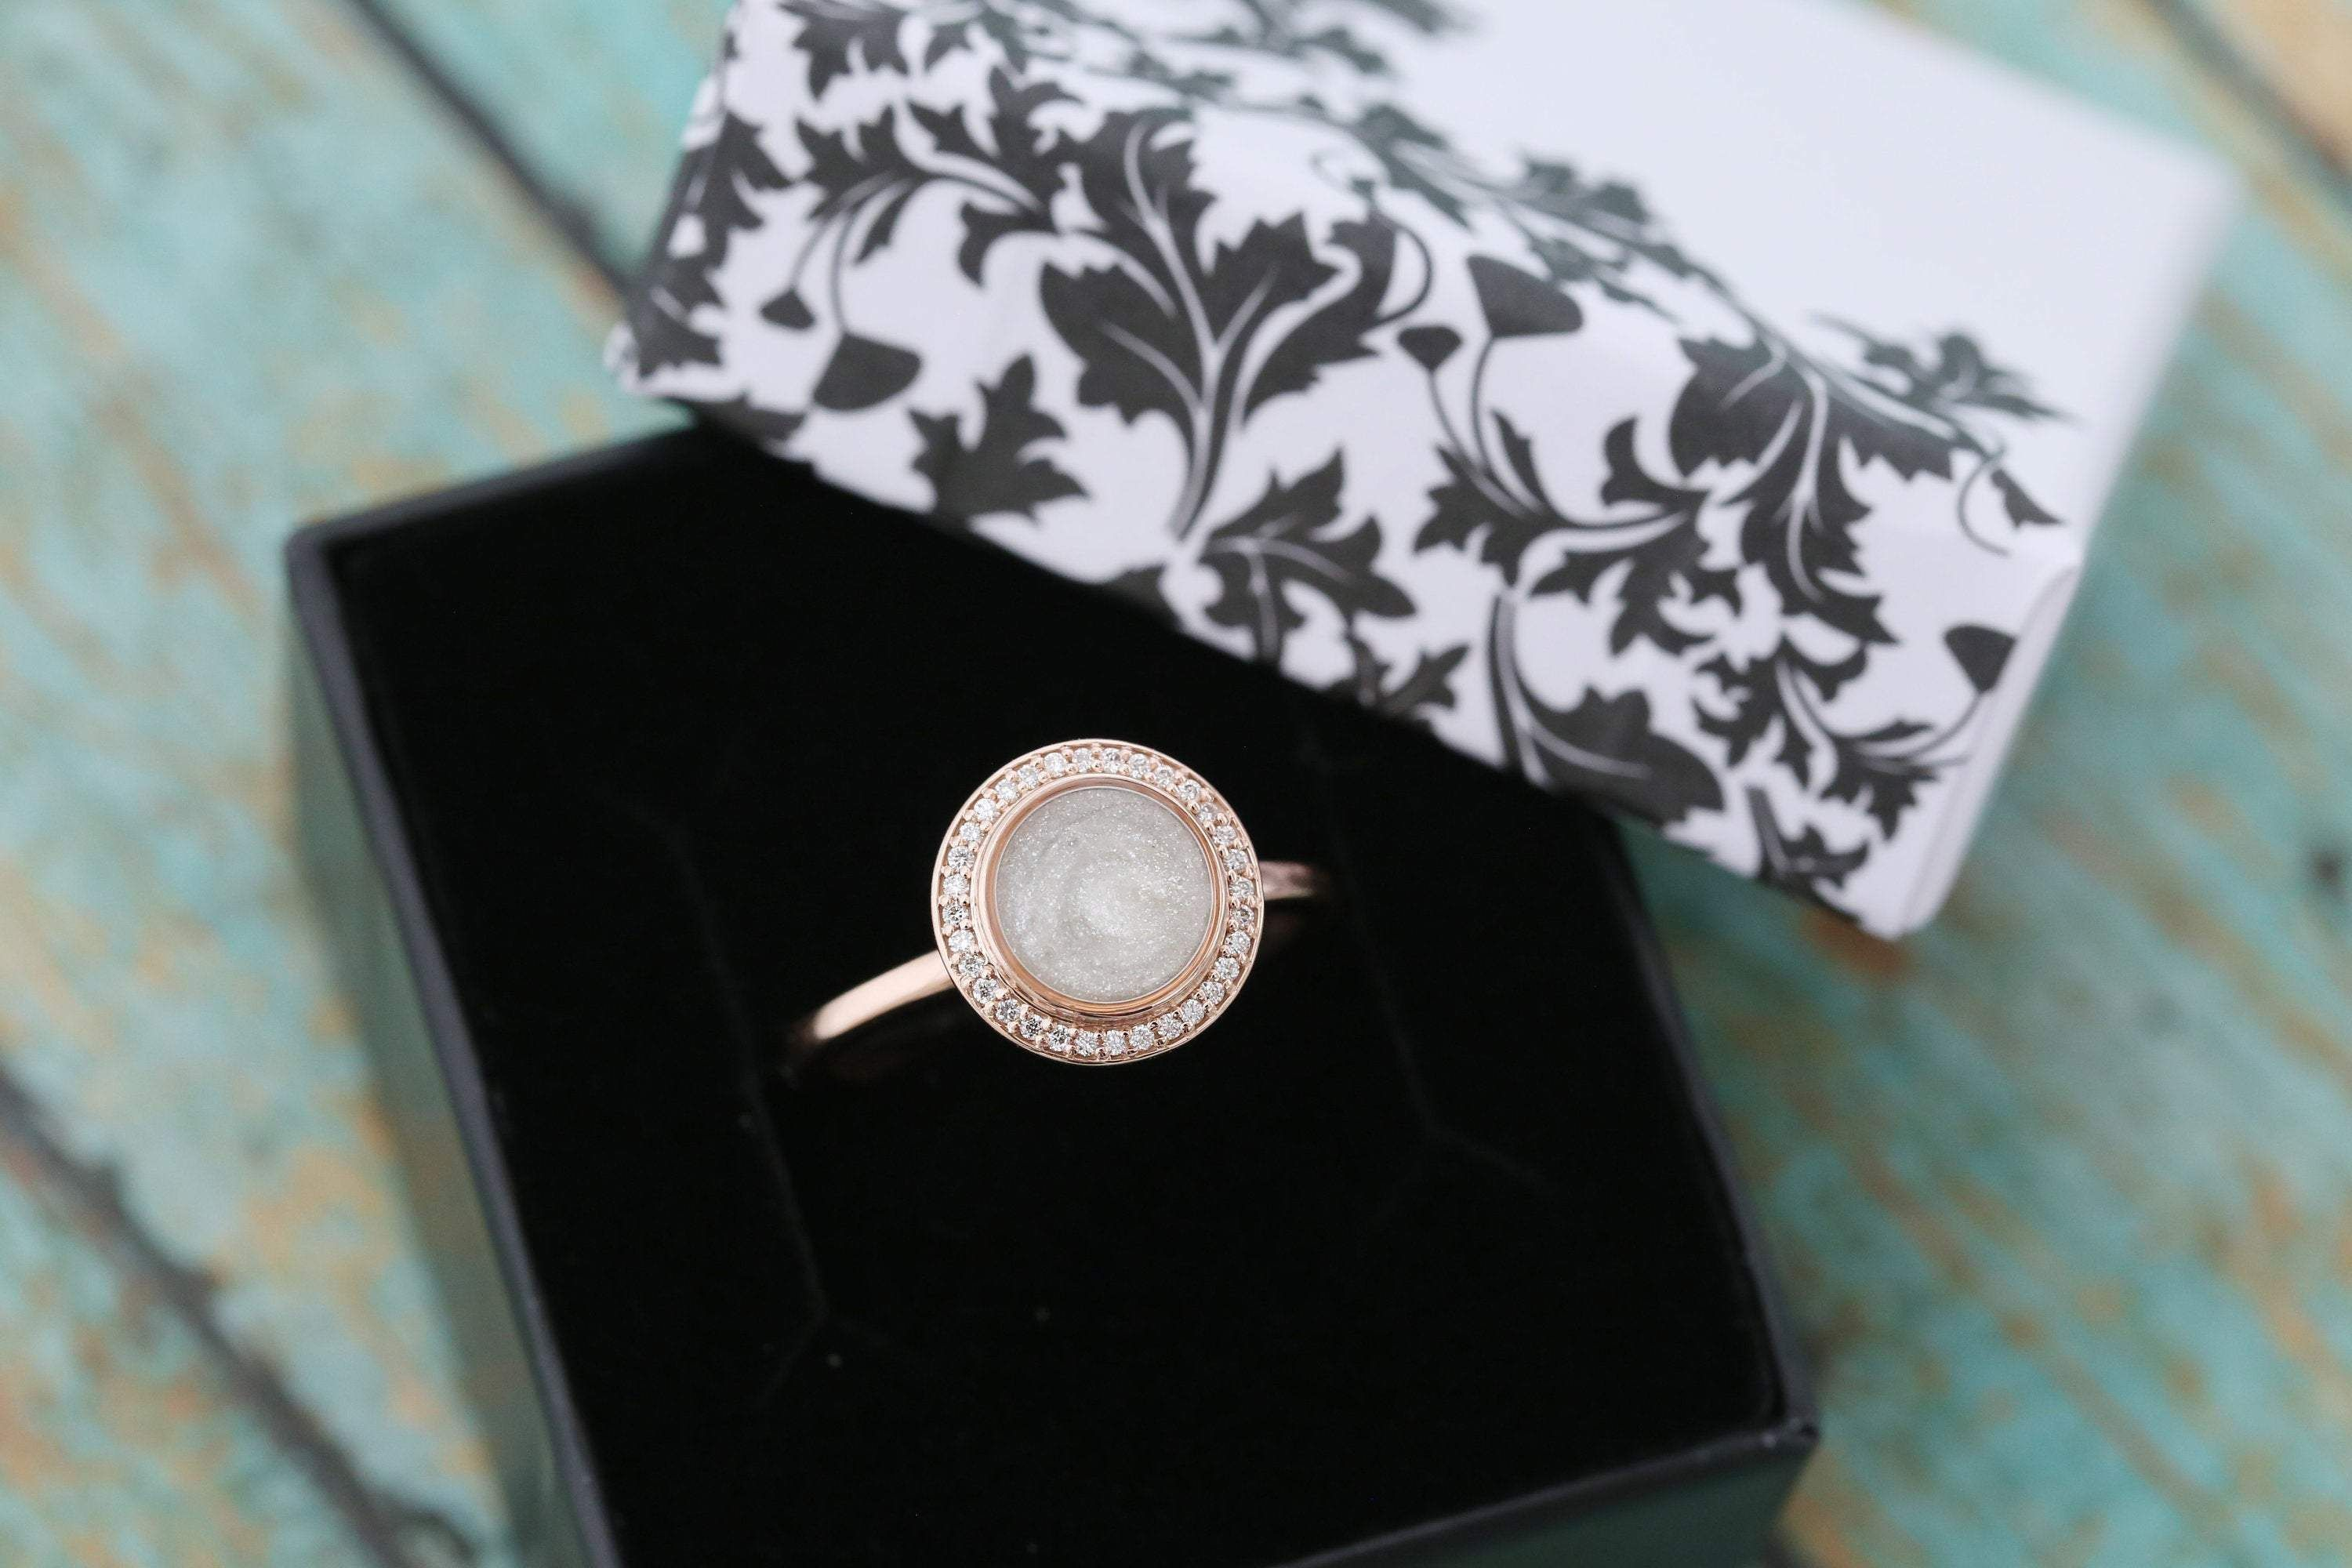 6mm 14k Rose Gold and Diamond Halo Cremation Ring